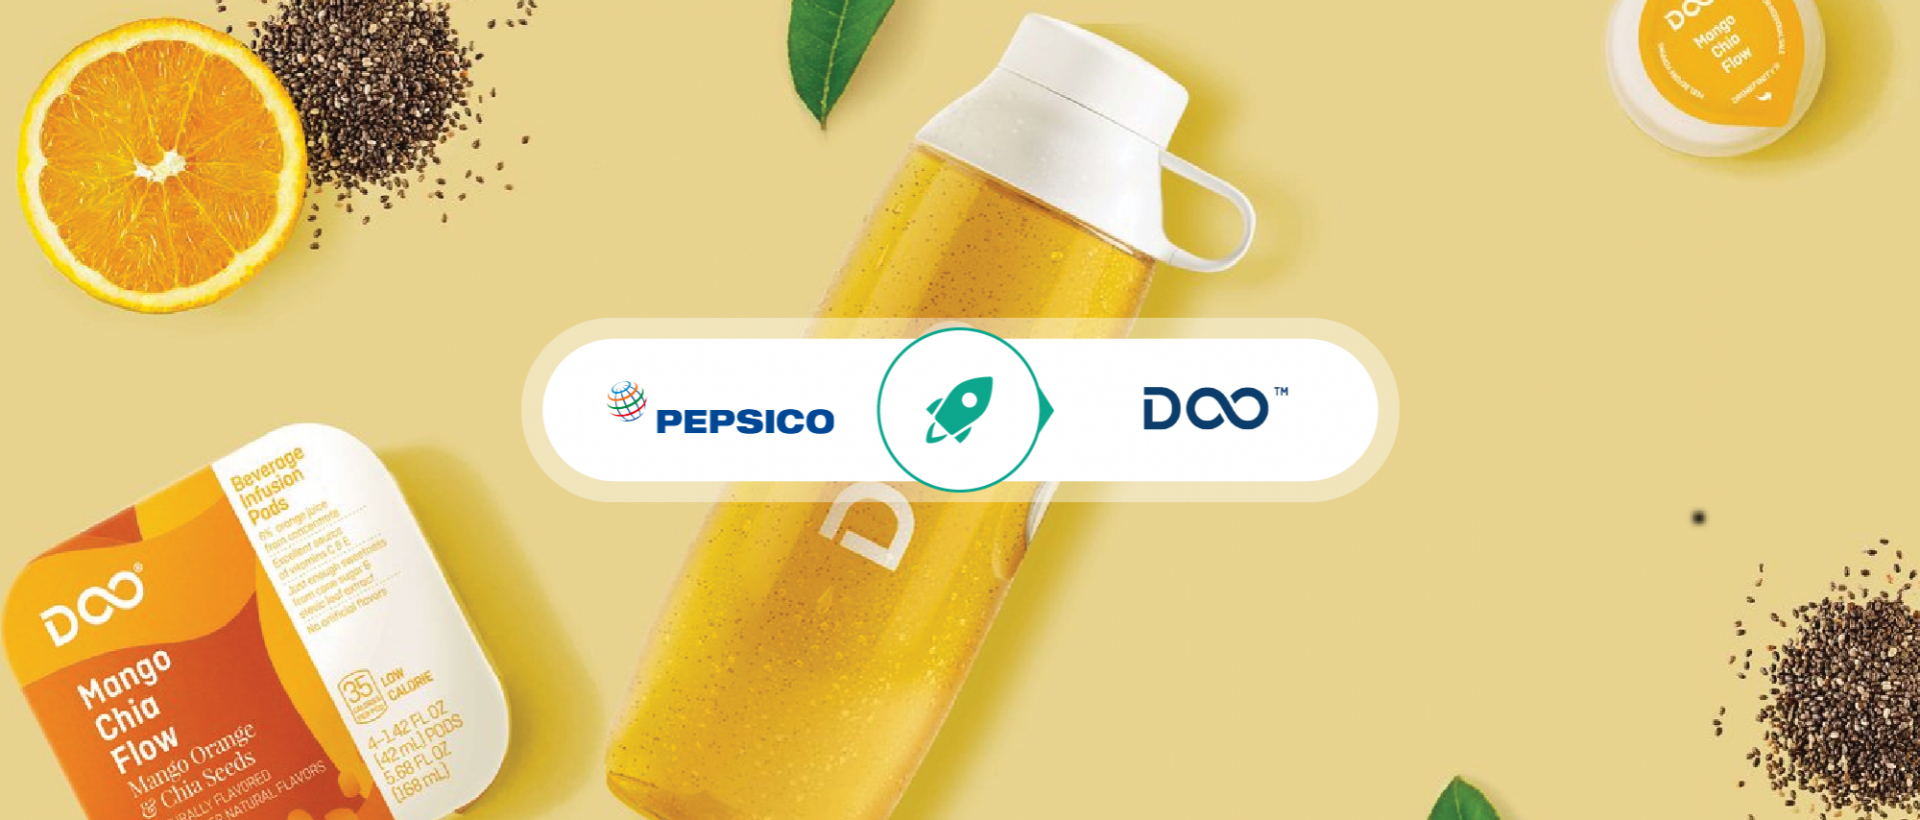 PepsiCo aims to reinvent the way people drink with a new beverage tailored to Millennials